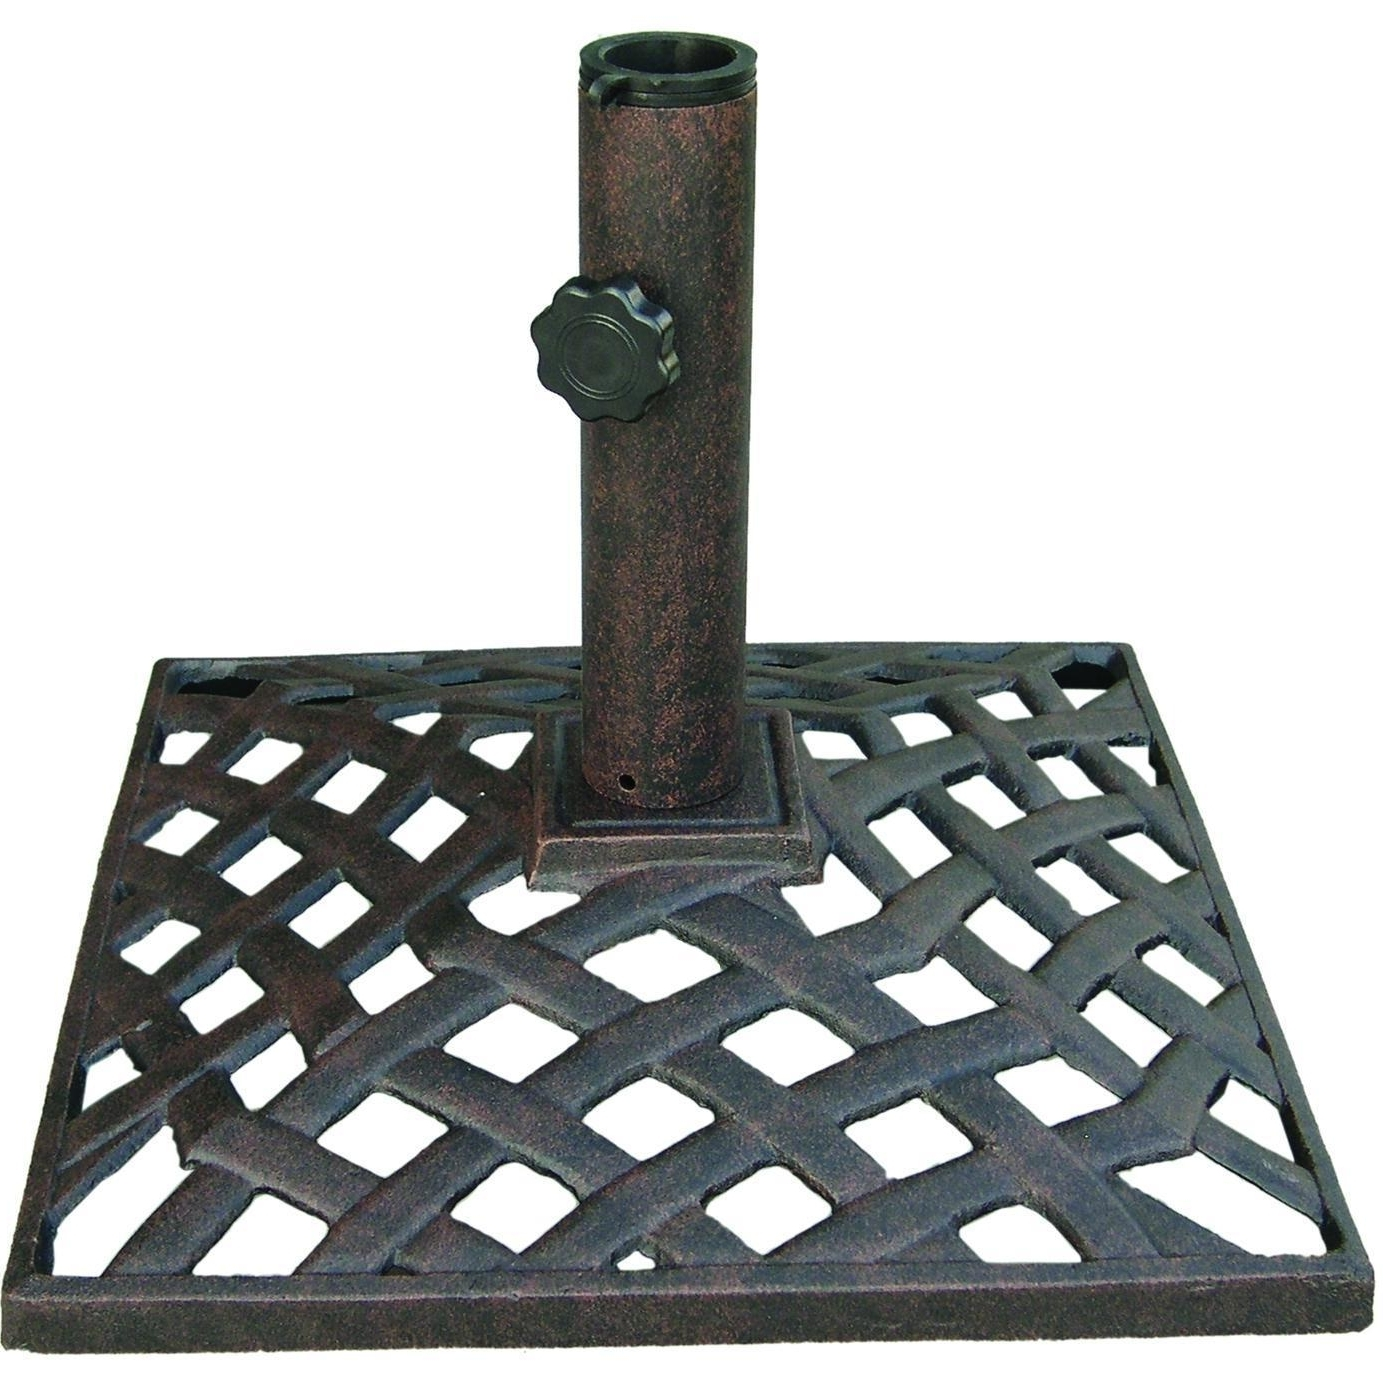 Darlee 35 Lb Basket Weave Cast Iron Patio Umbrella Base : Ultimate Patio Throughout Favorite Patio Umbrellas And Bases (Gallery 15 of 20)